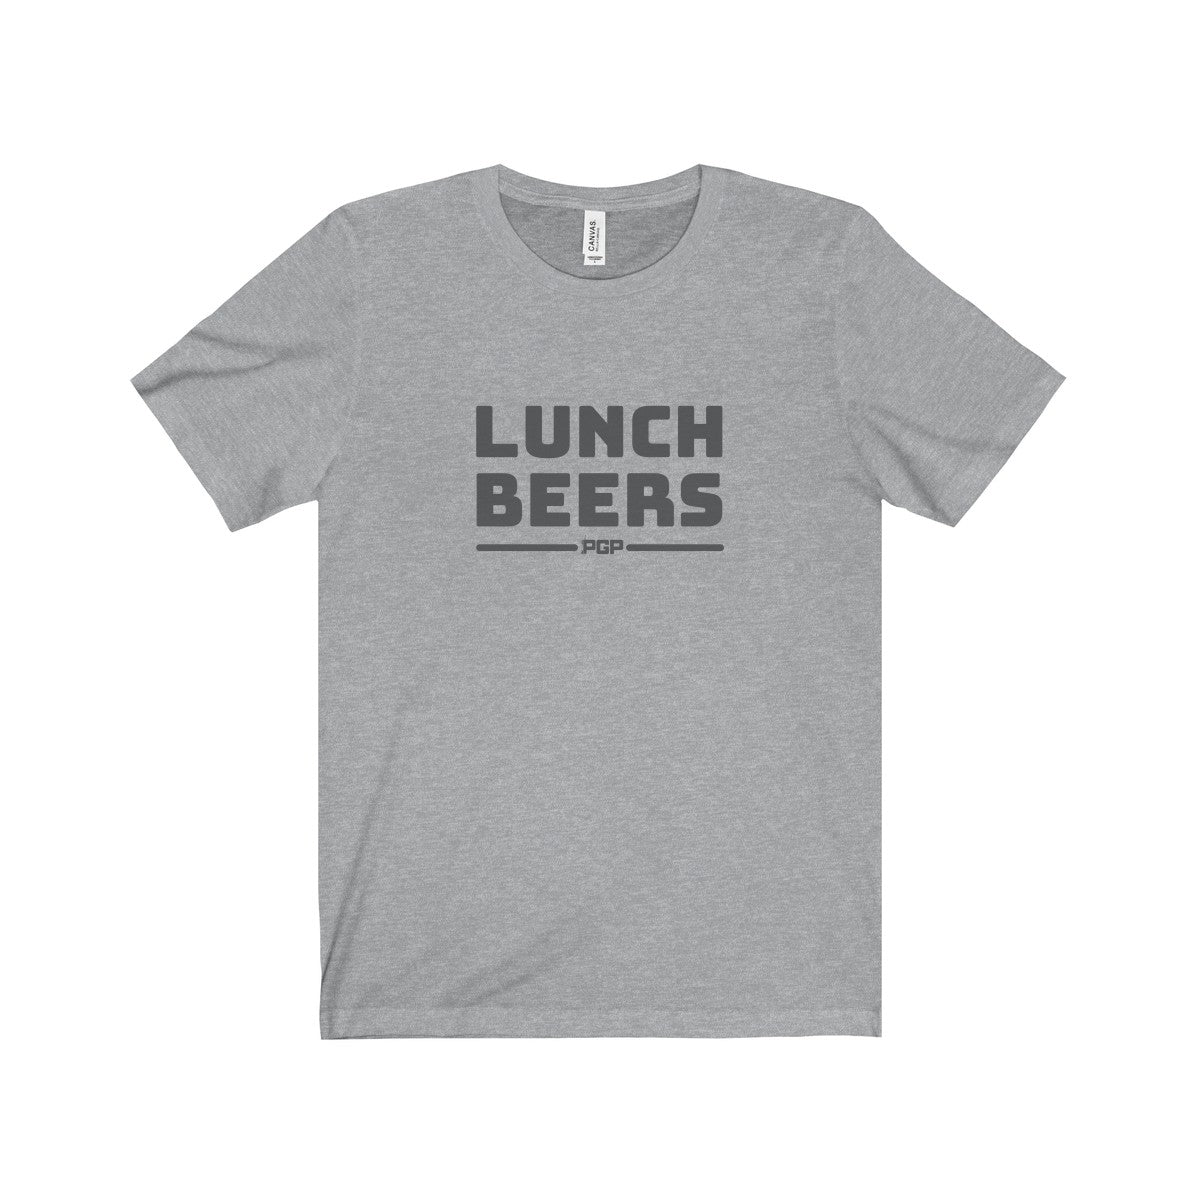 Lunch Beers Shirt